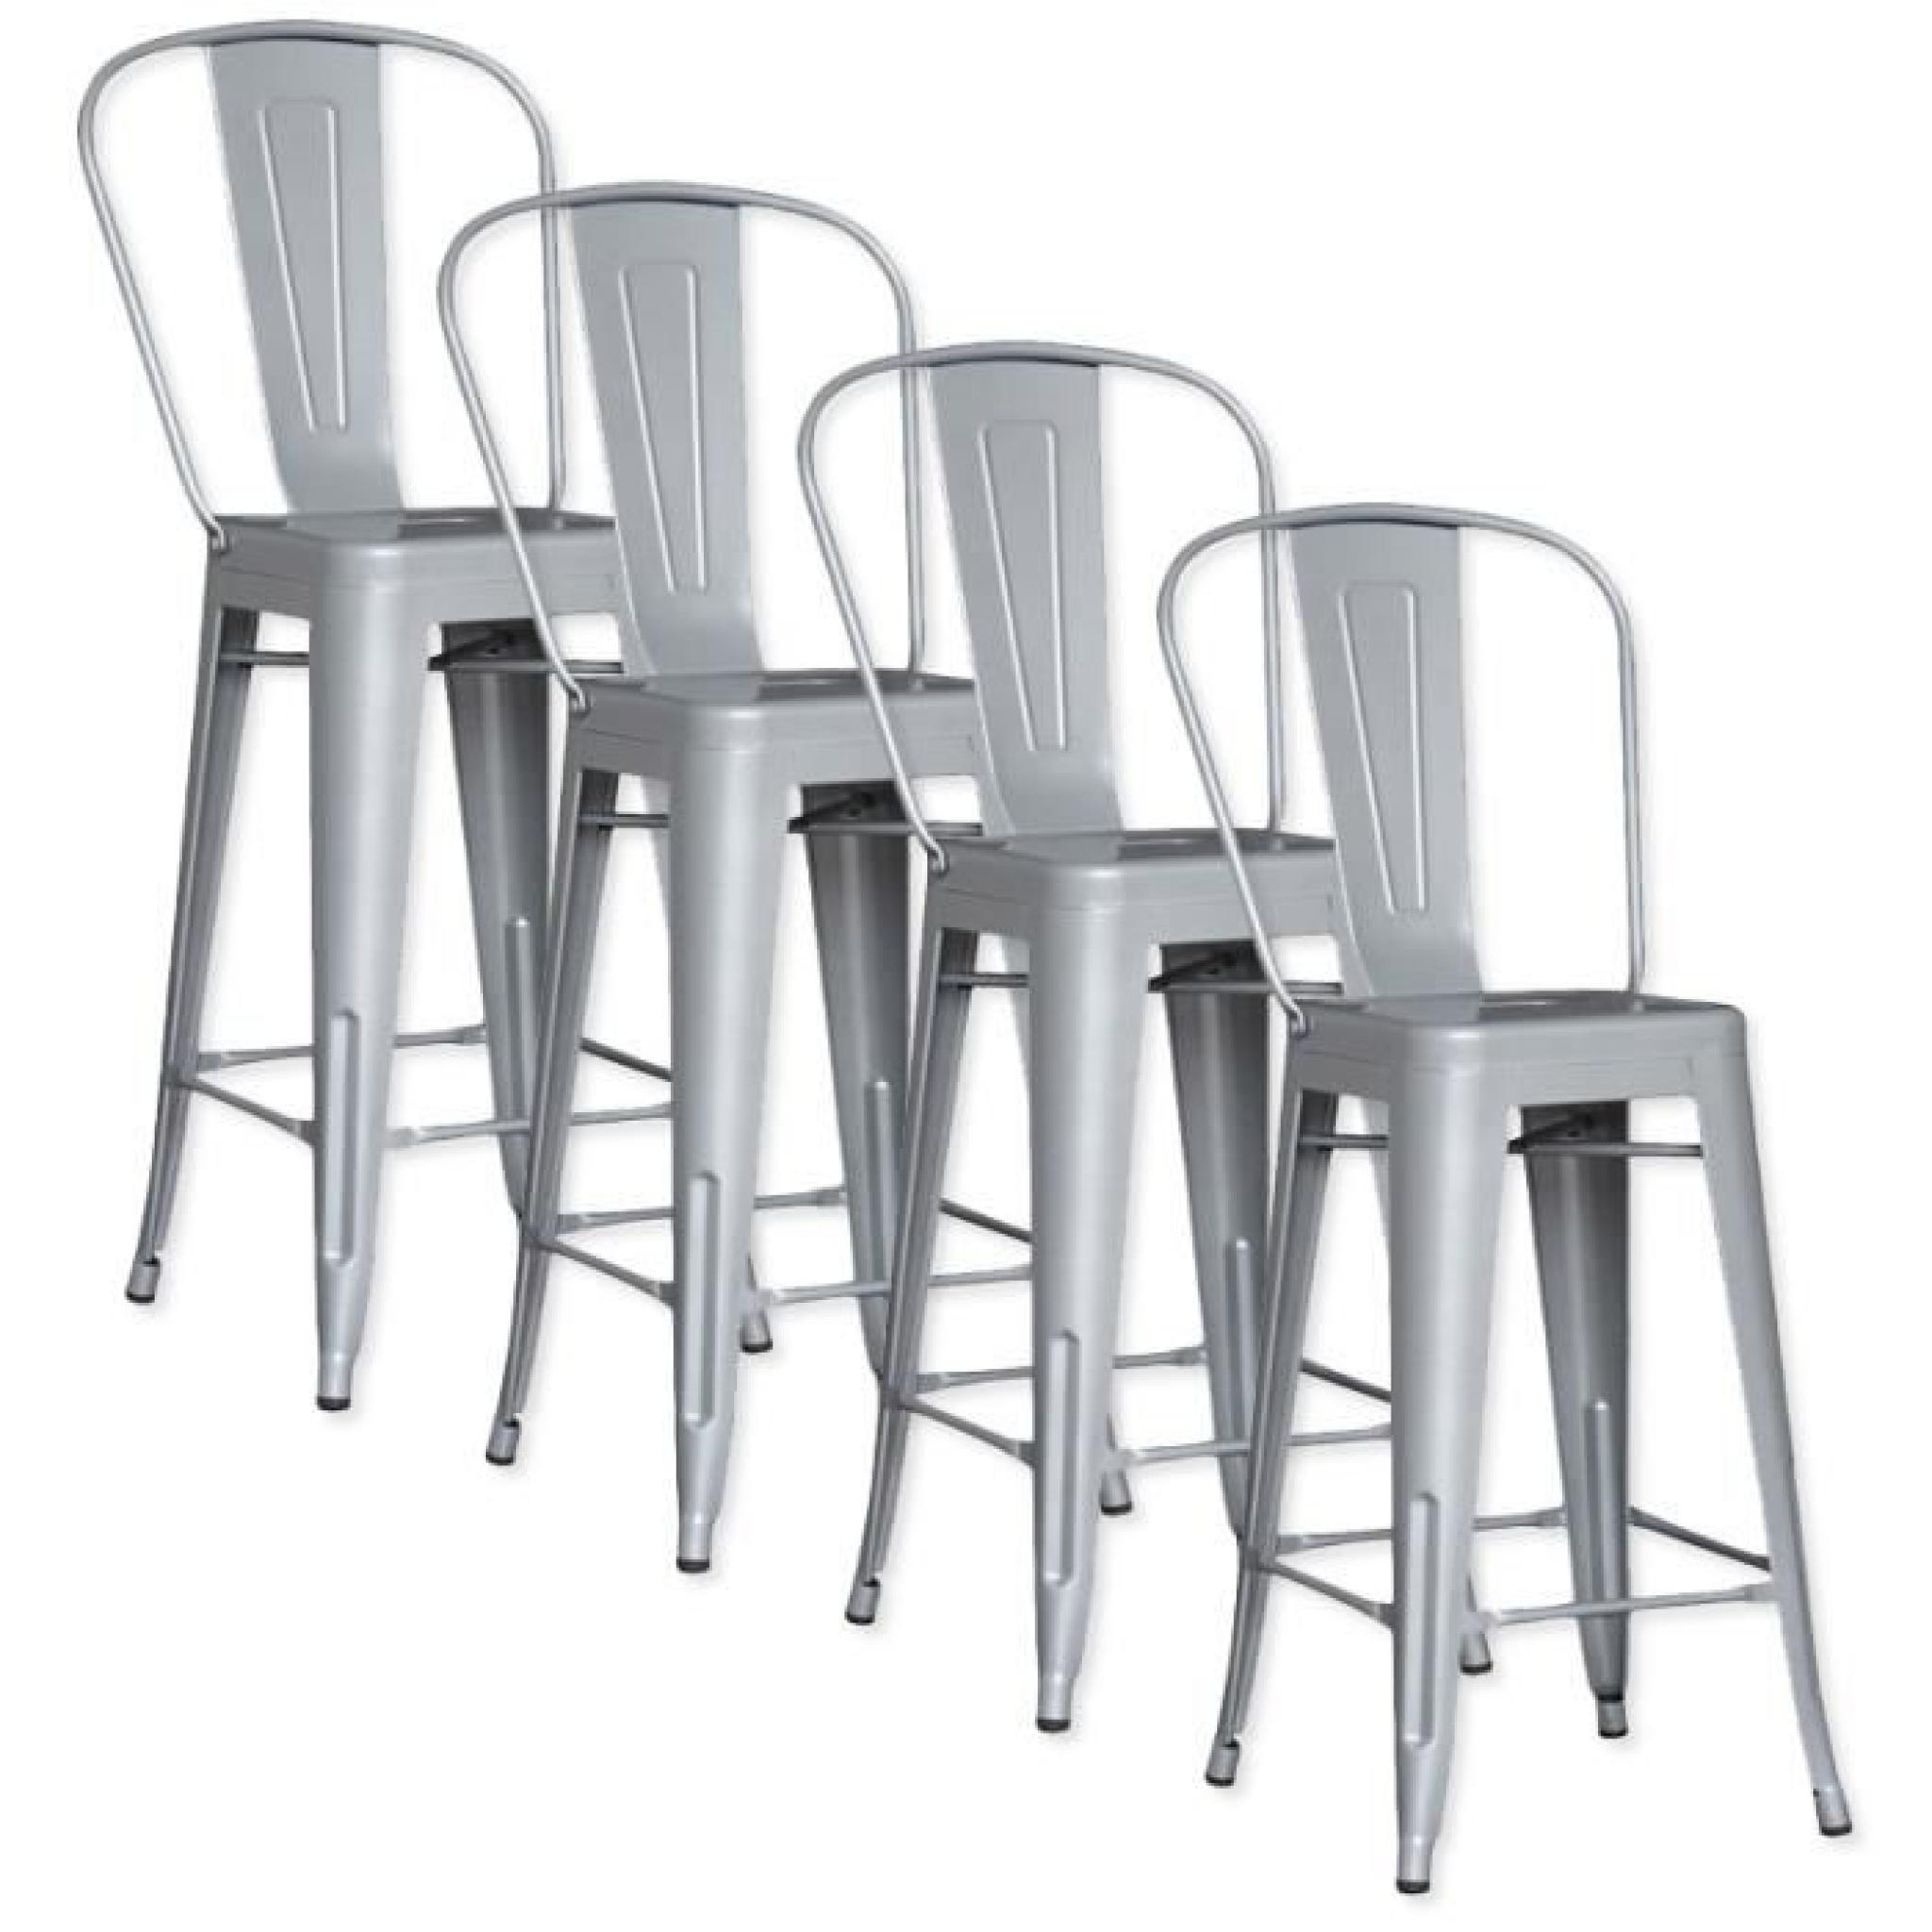 lot de 4 chaises de bar m tal loft laqu gris achat vente tabouret de bar pas cher couleur. Black Bedroom Furniture Sets. Home Design Ideas